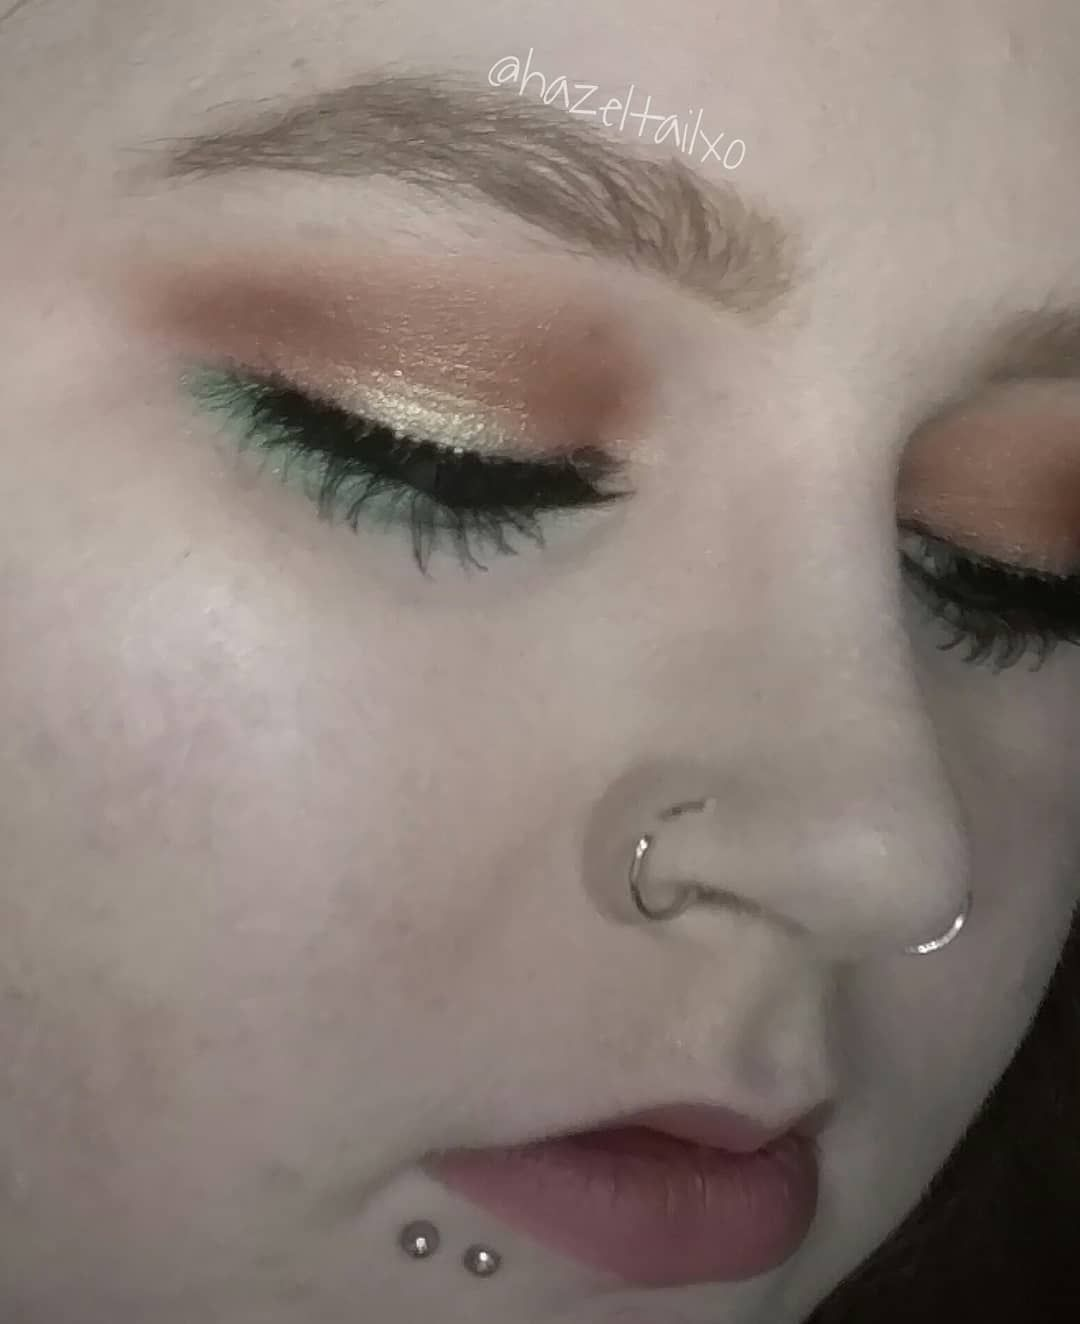 Brows Are Revlon Colorstay Brow Pencil In Blonde Eyes Are Lorac